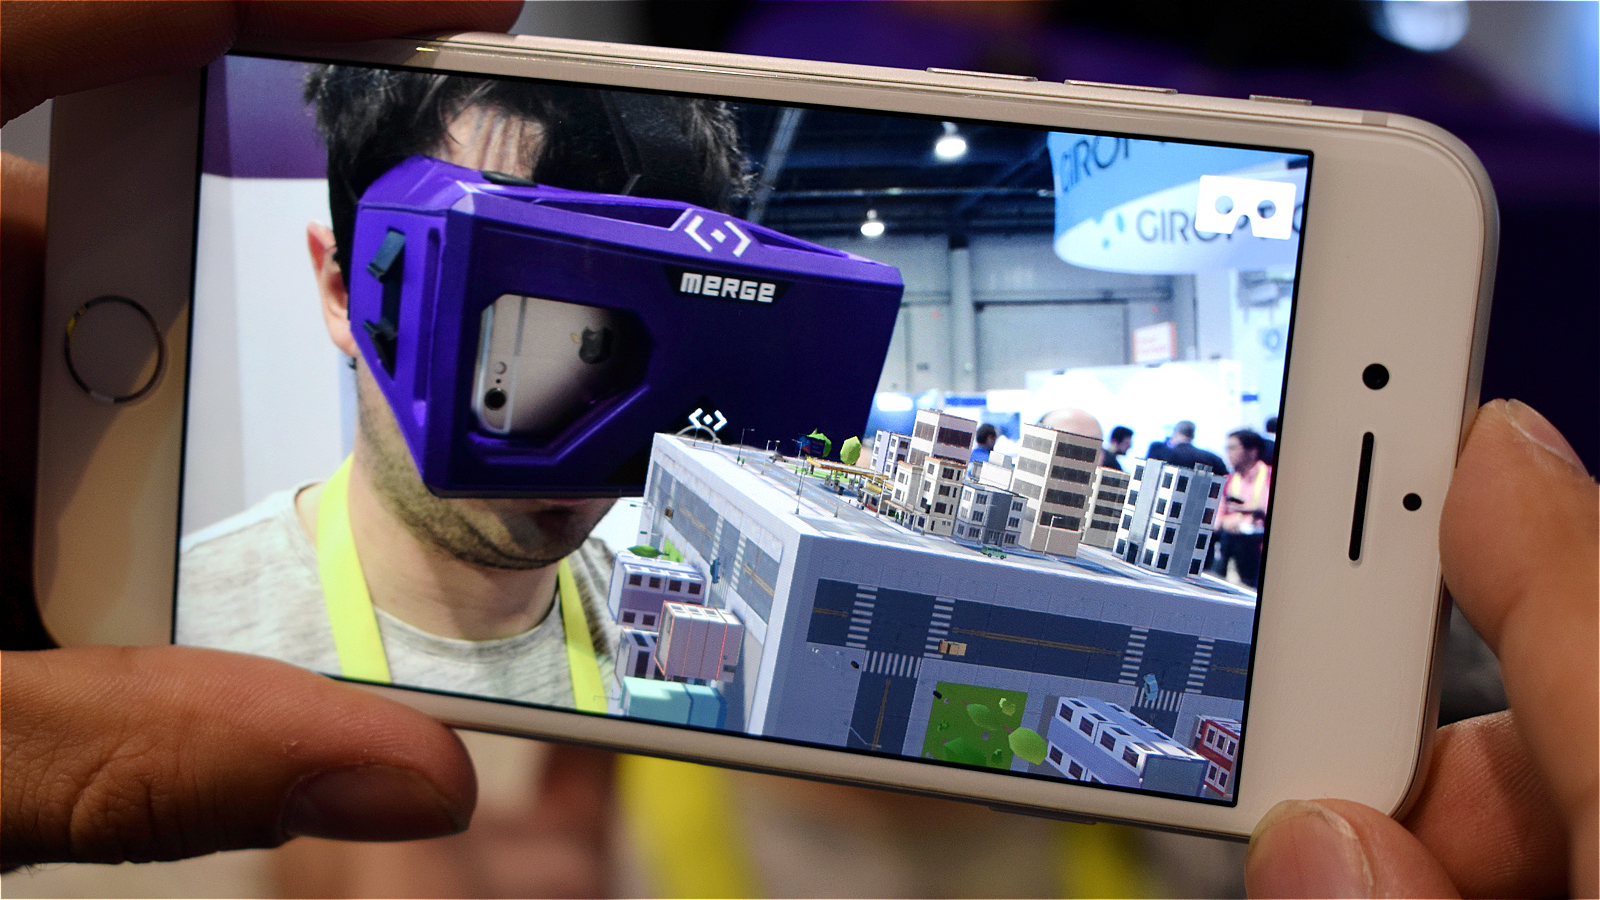 Merge's Holo Cube brings AR to life